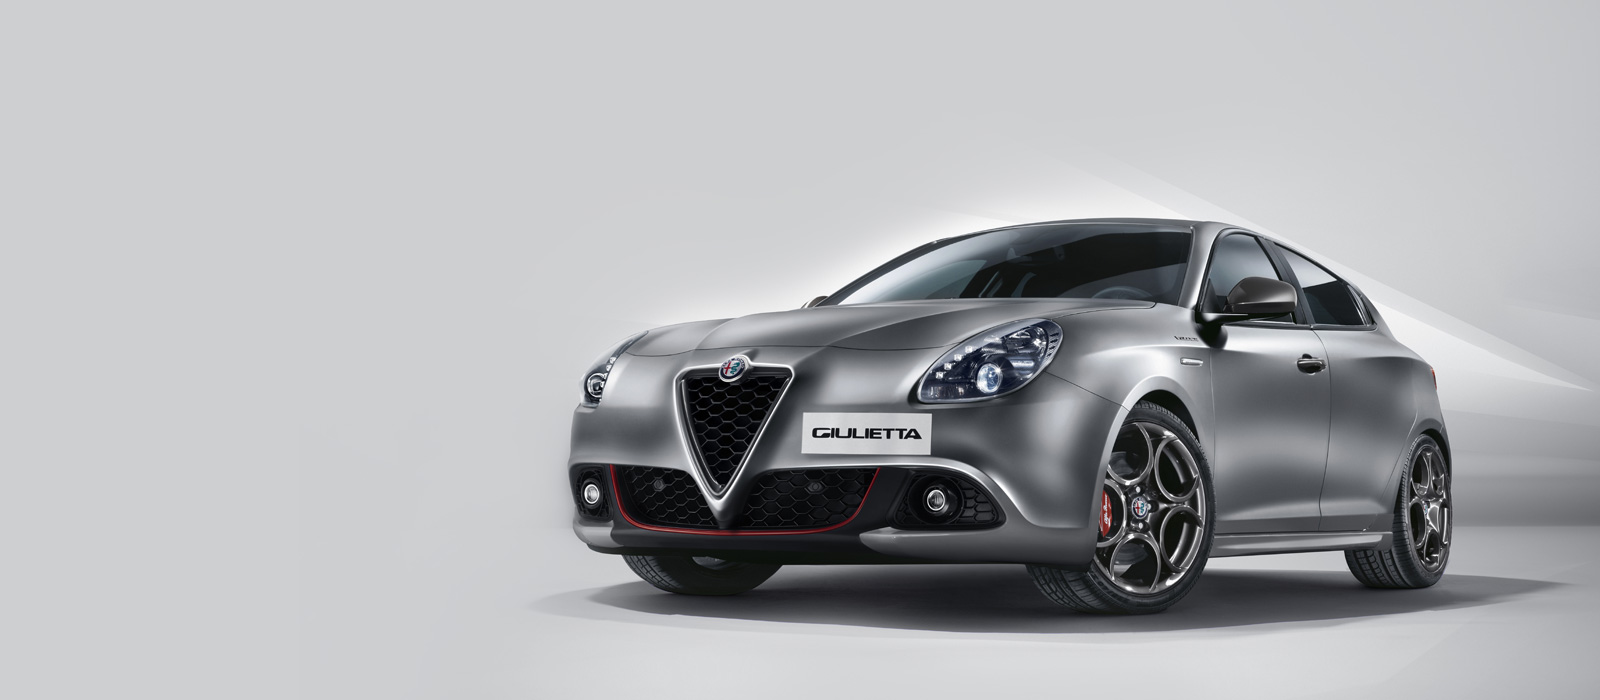 Alfa giulietta service coupon expired